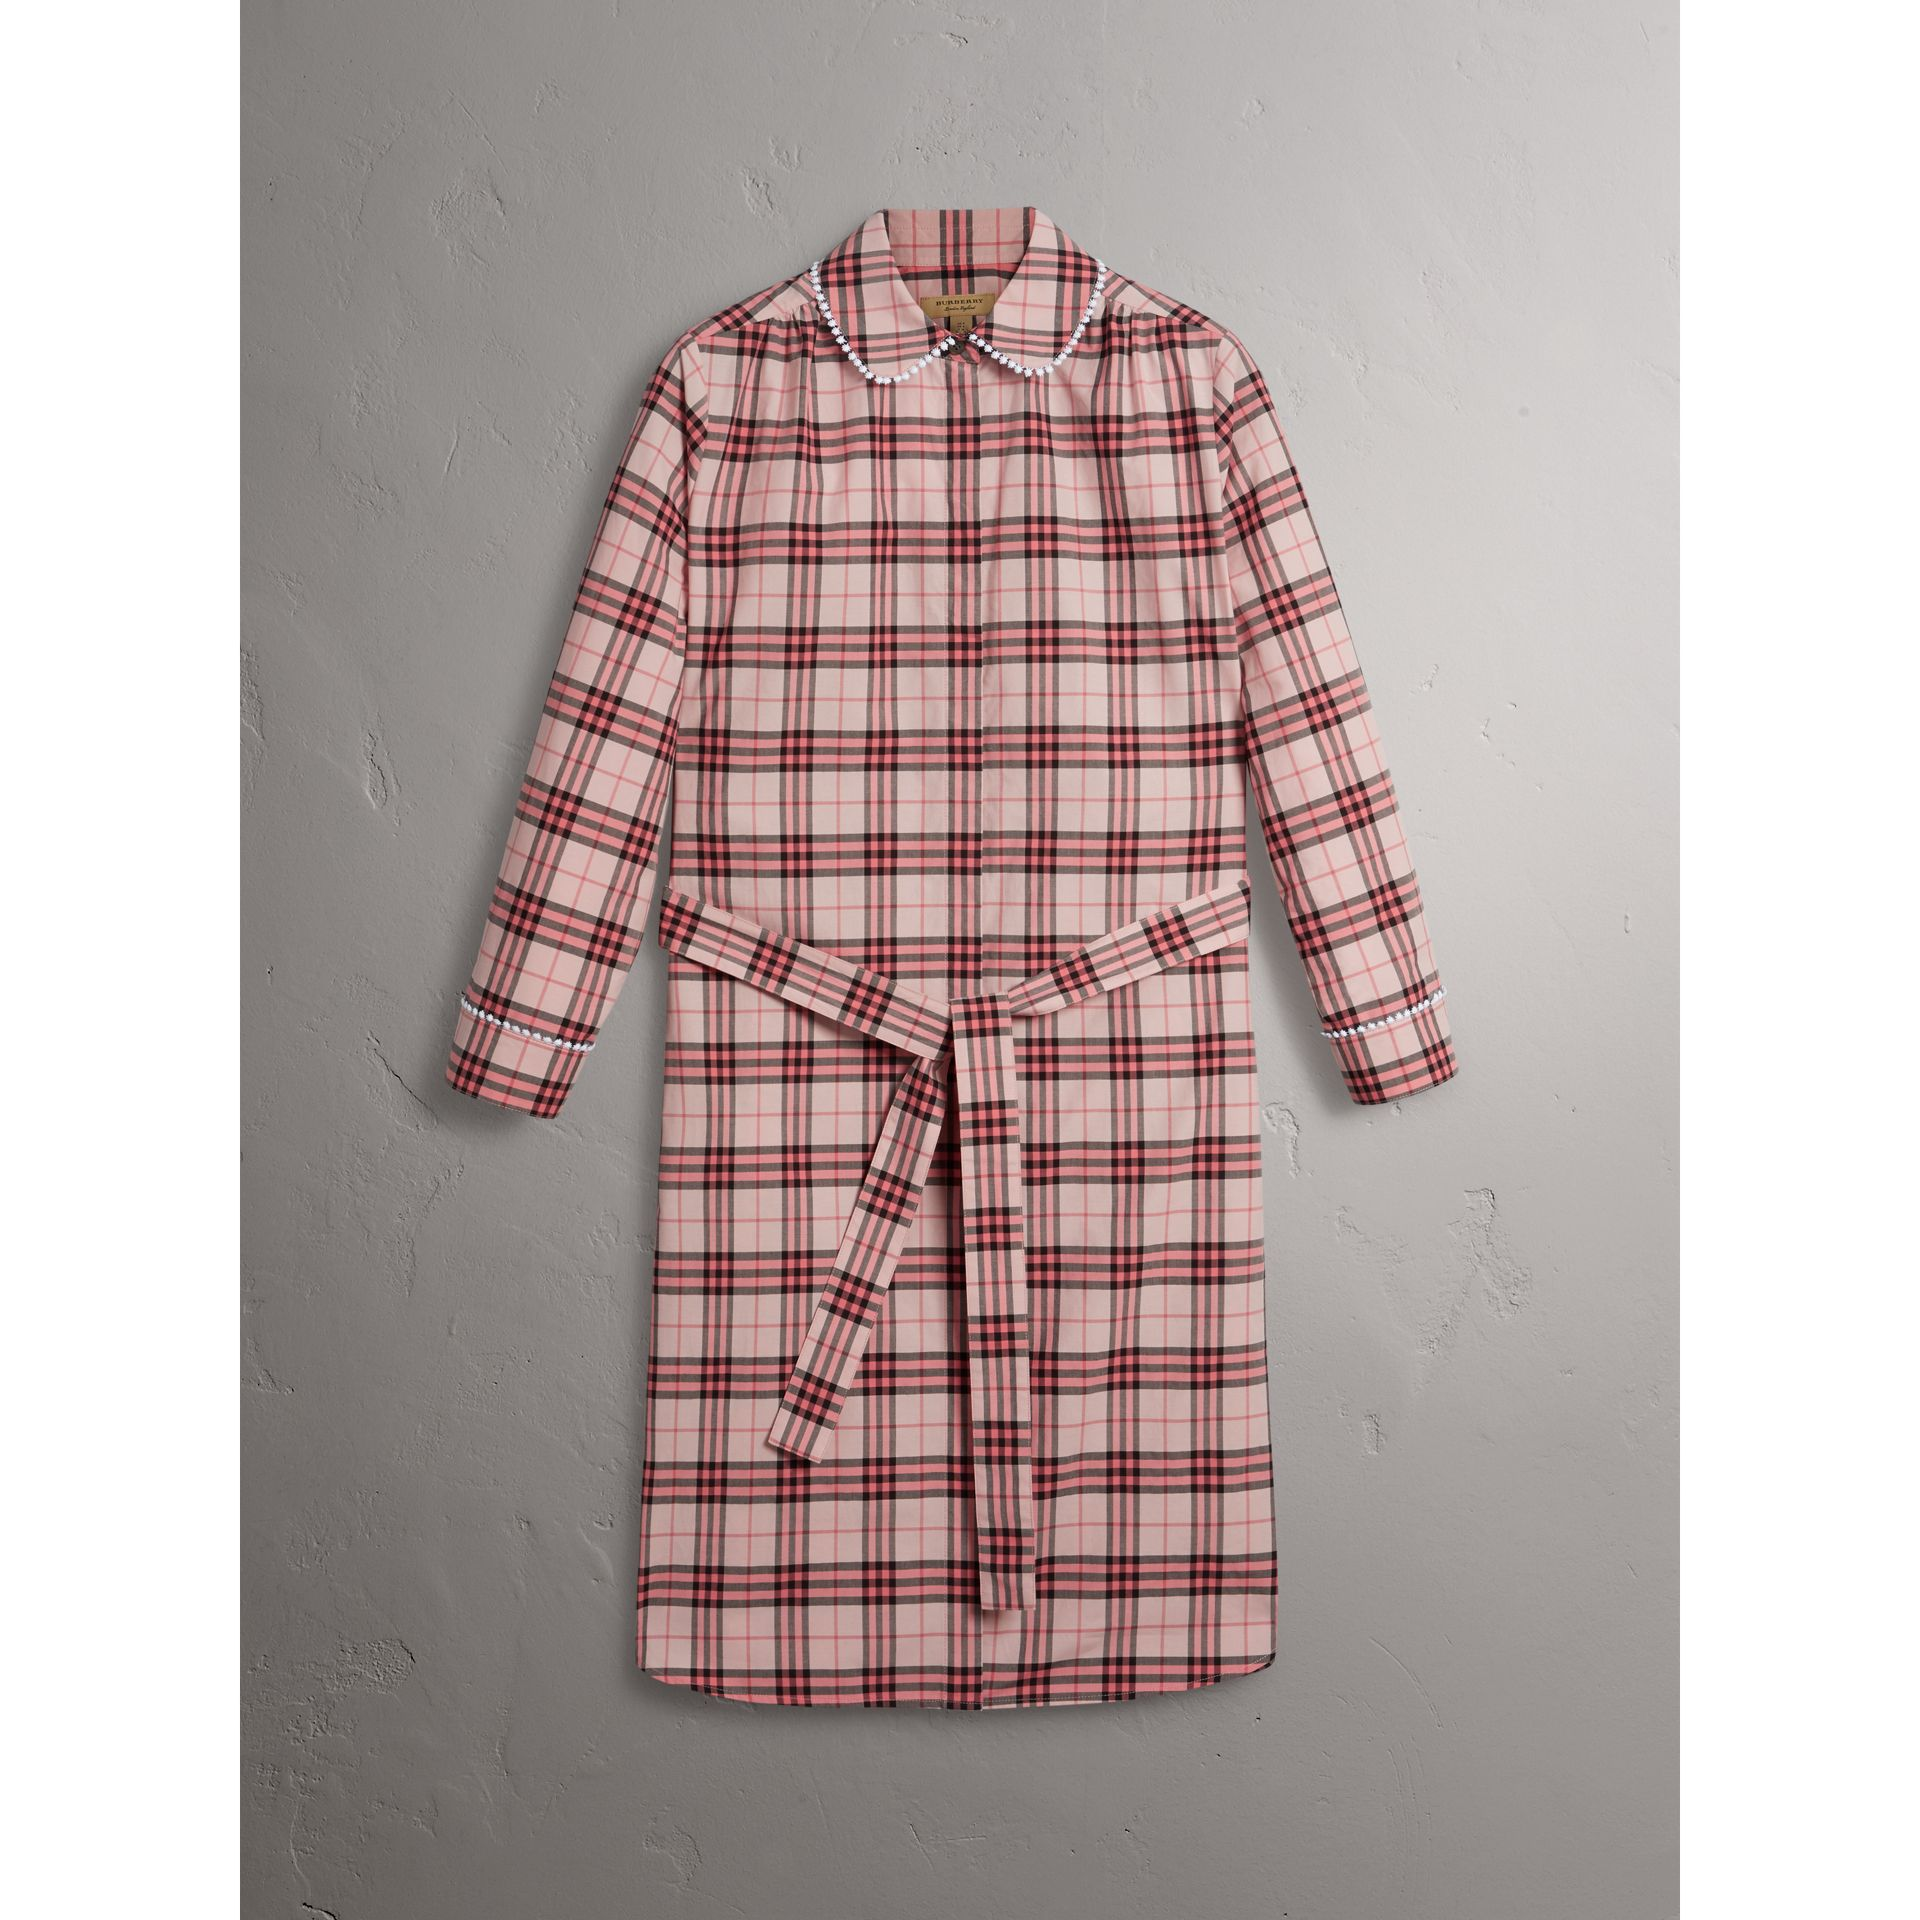 Lace Trim Collar Check Cotton Shirt Dress in Pink Azalea - Women | Burberry Singapore - gallery image 3